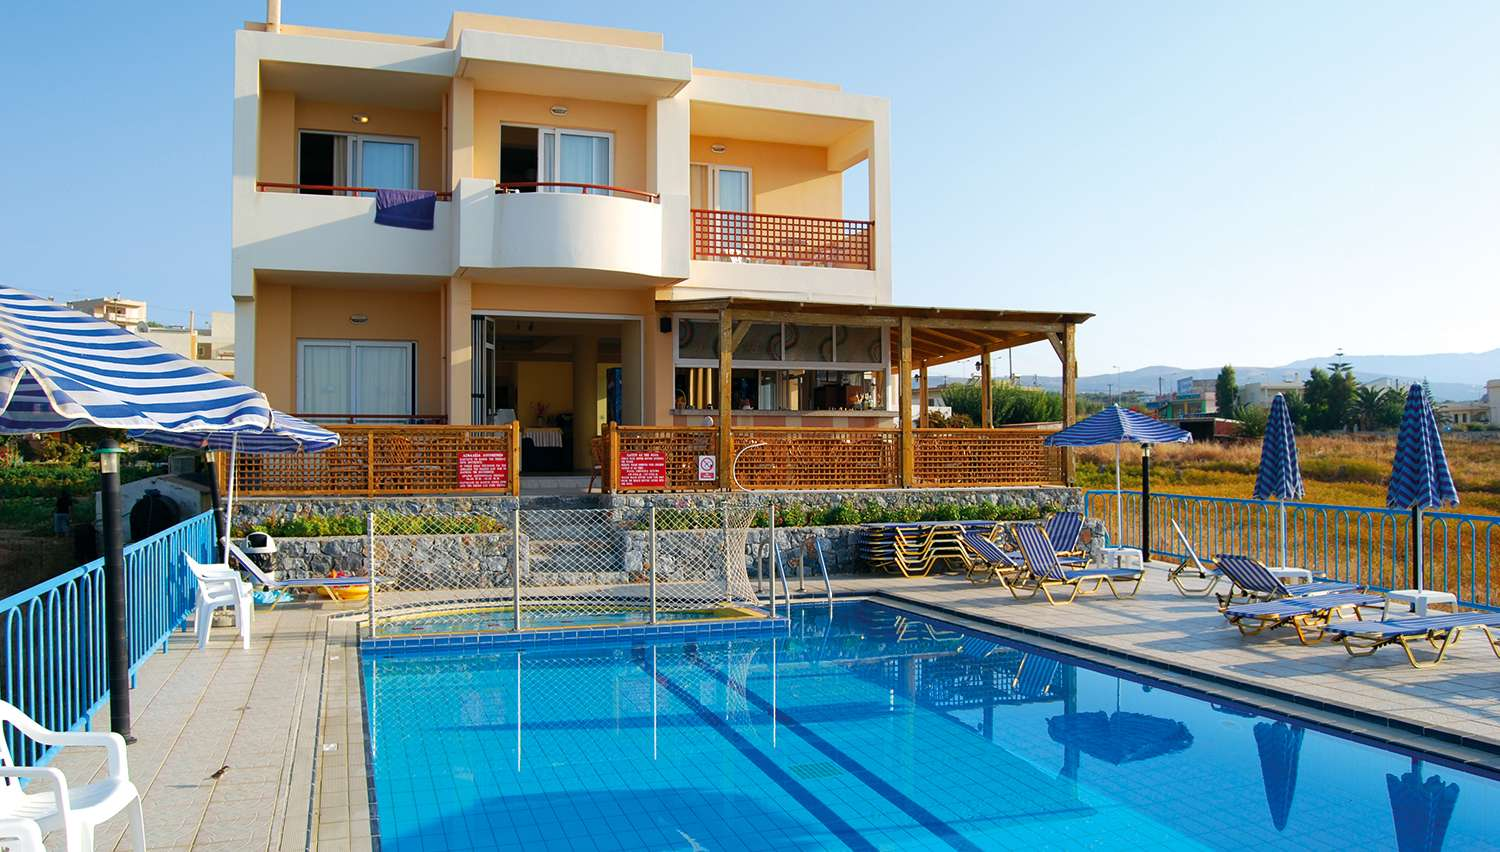 Danaos Beach Apartmenti